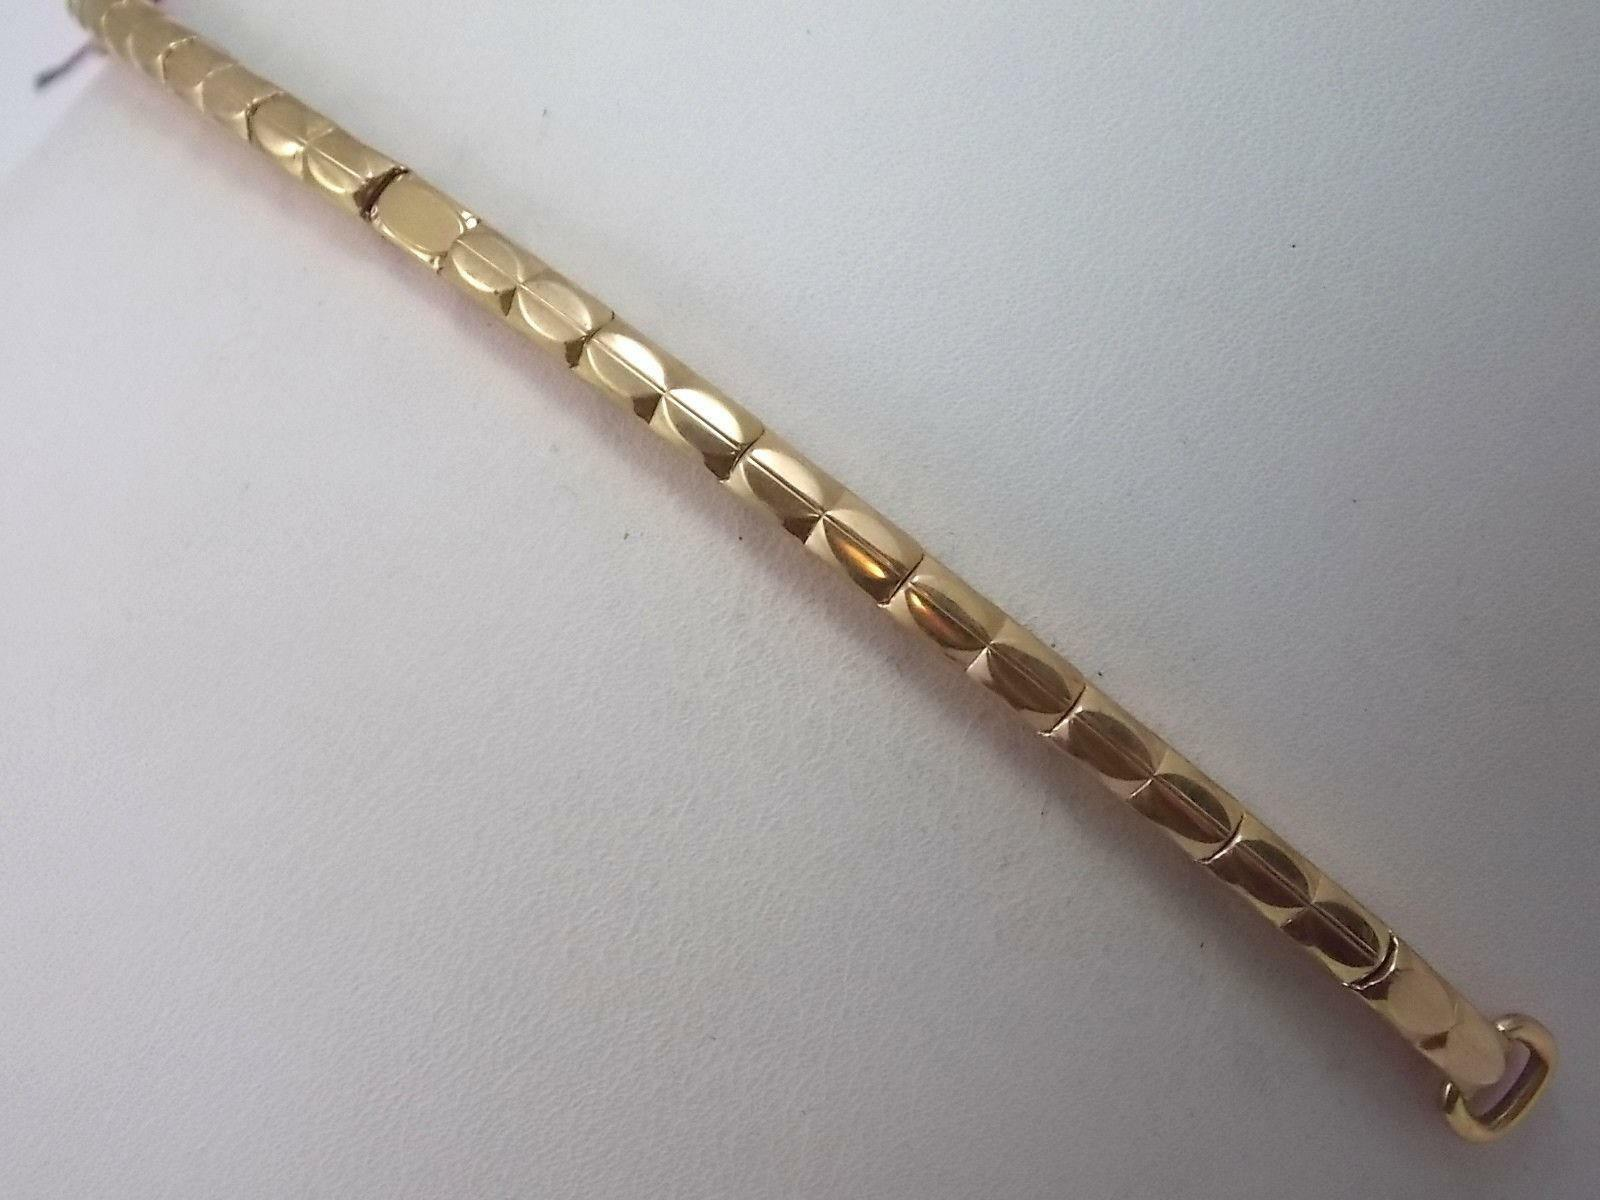 Vintage Hook End Hadley Ladies Watch Band Full Expansion Gold Filled New Old Stk